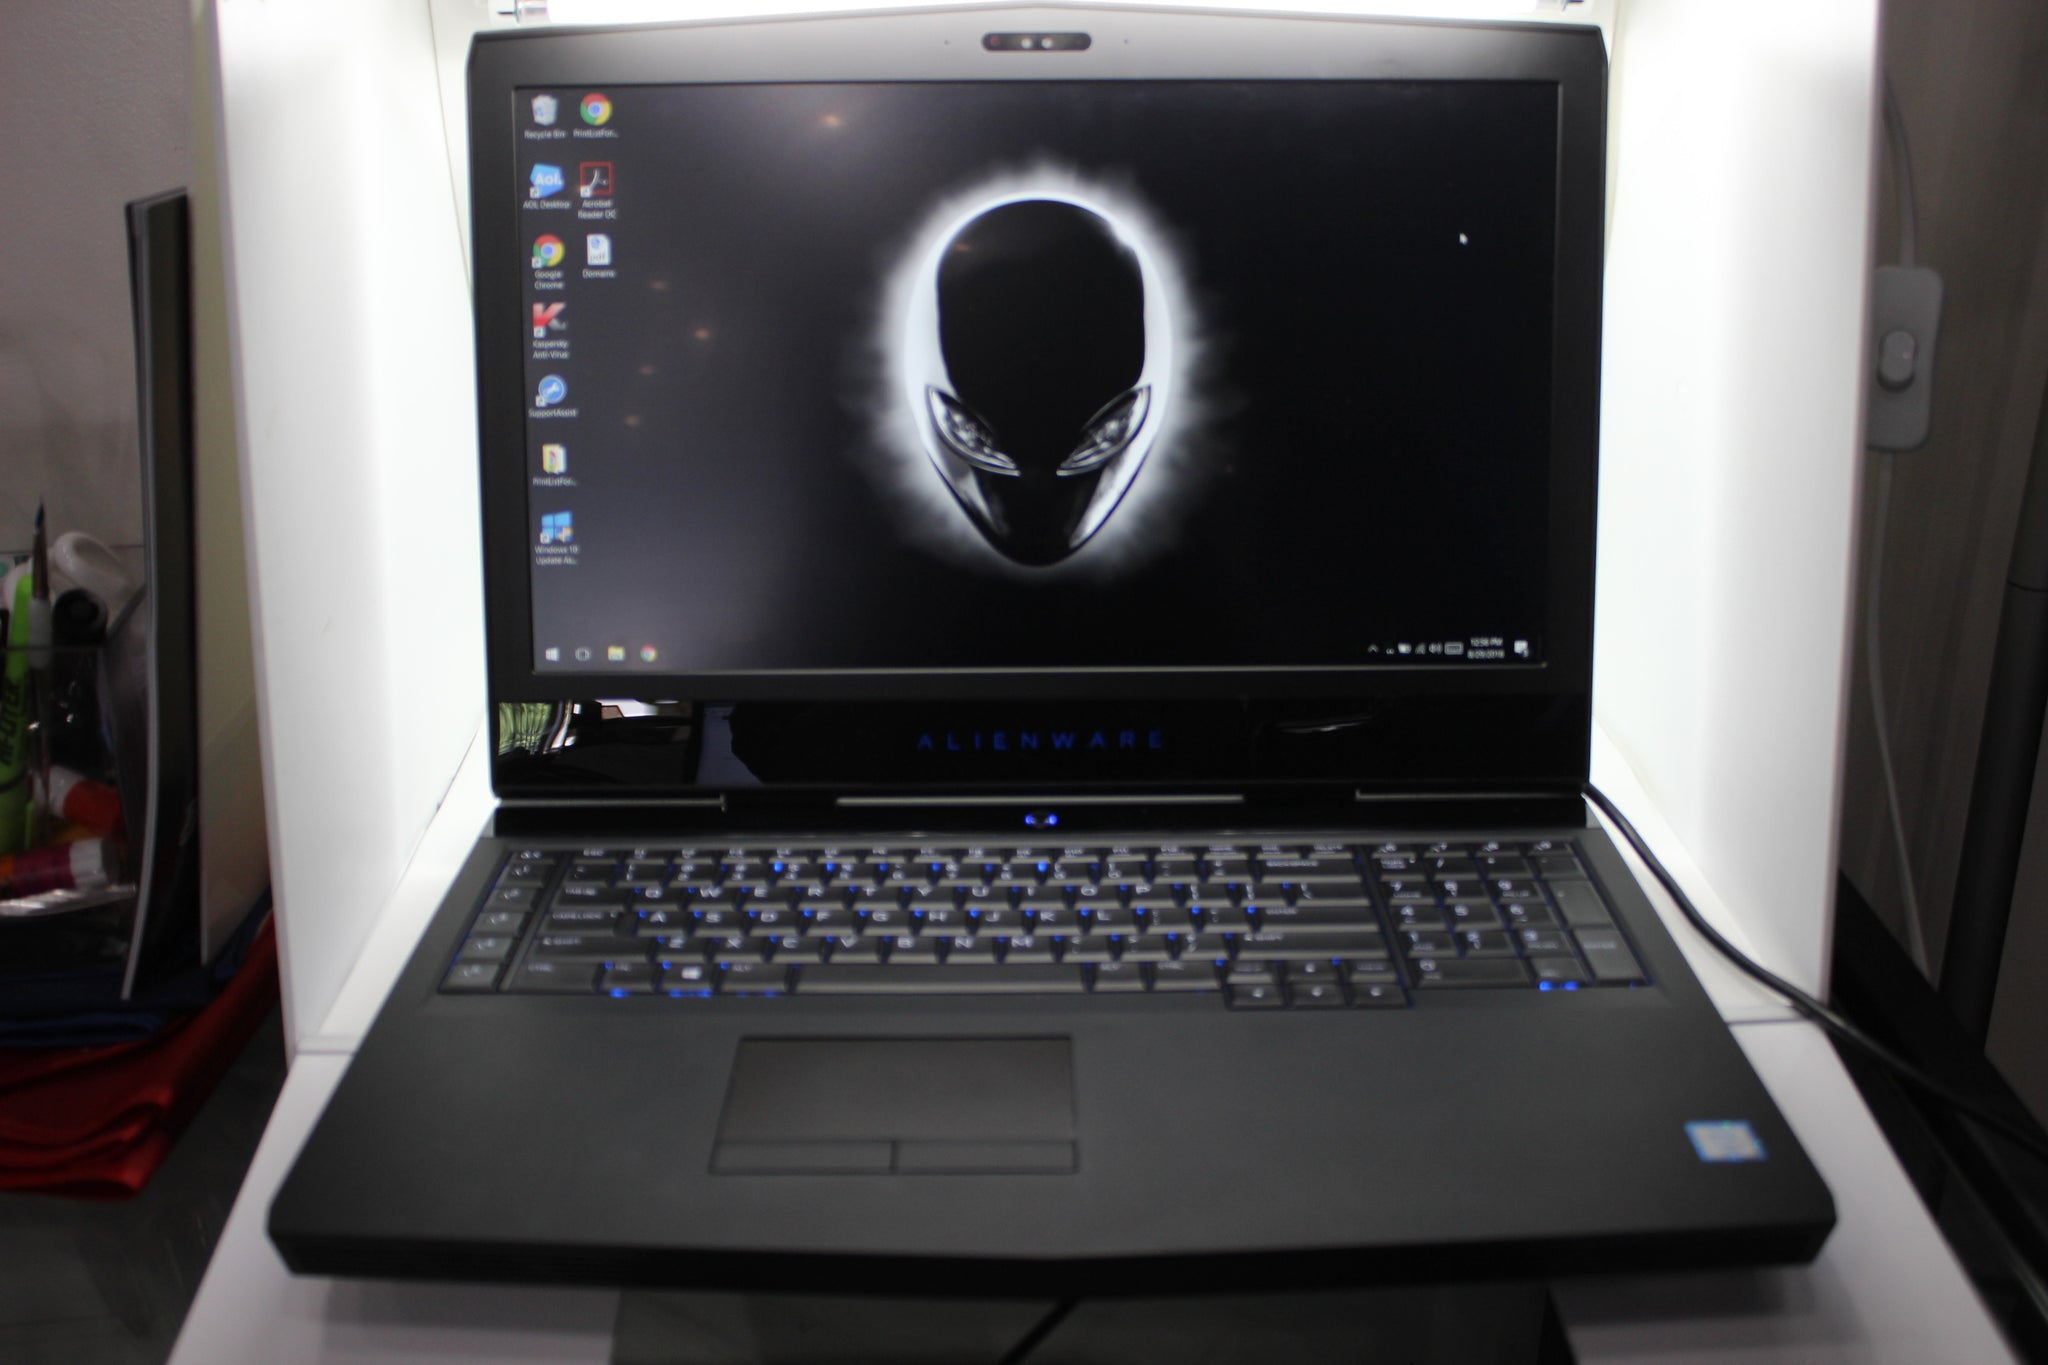 Alienware 17 R4 Gaming Laptop - Intel Core i7-6700HQ CPU